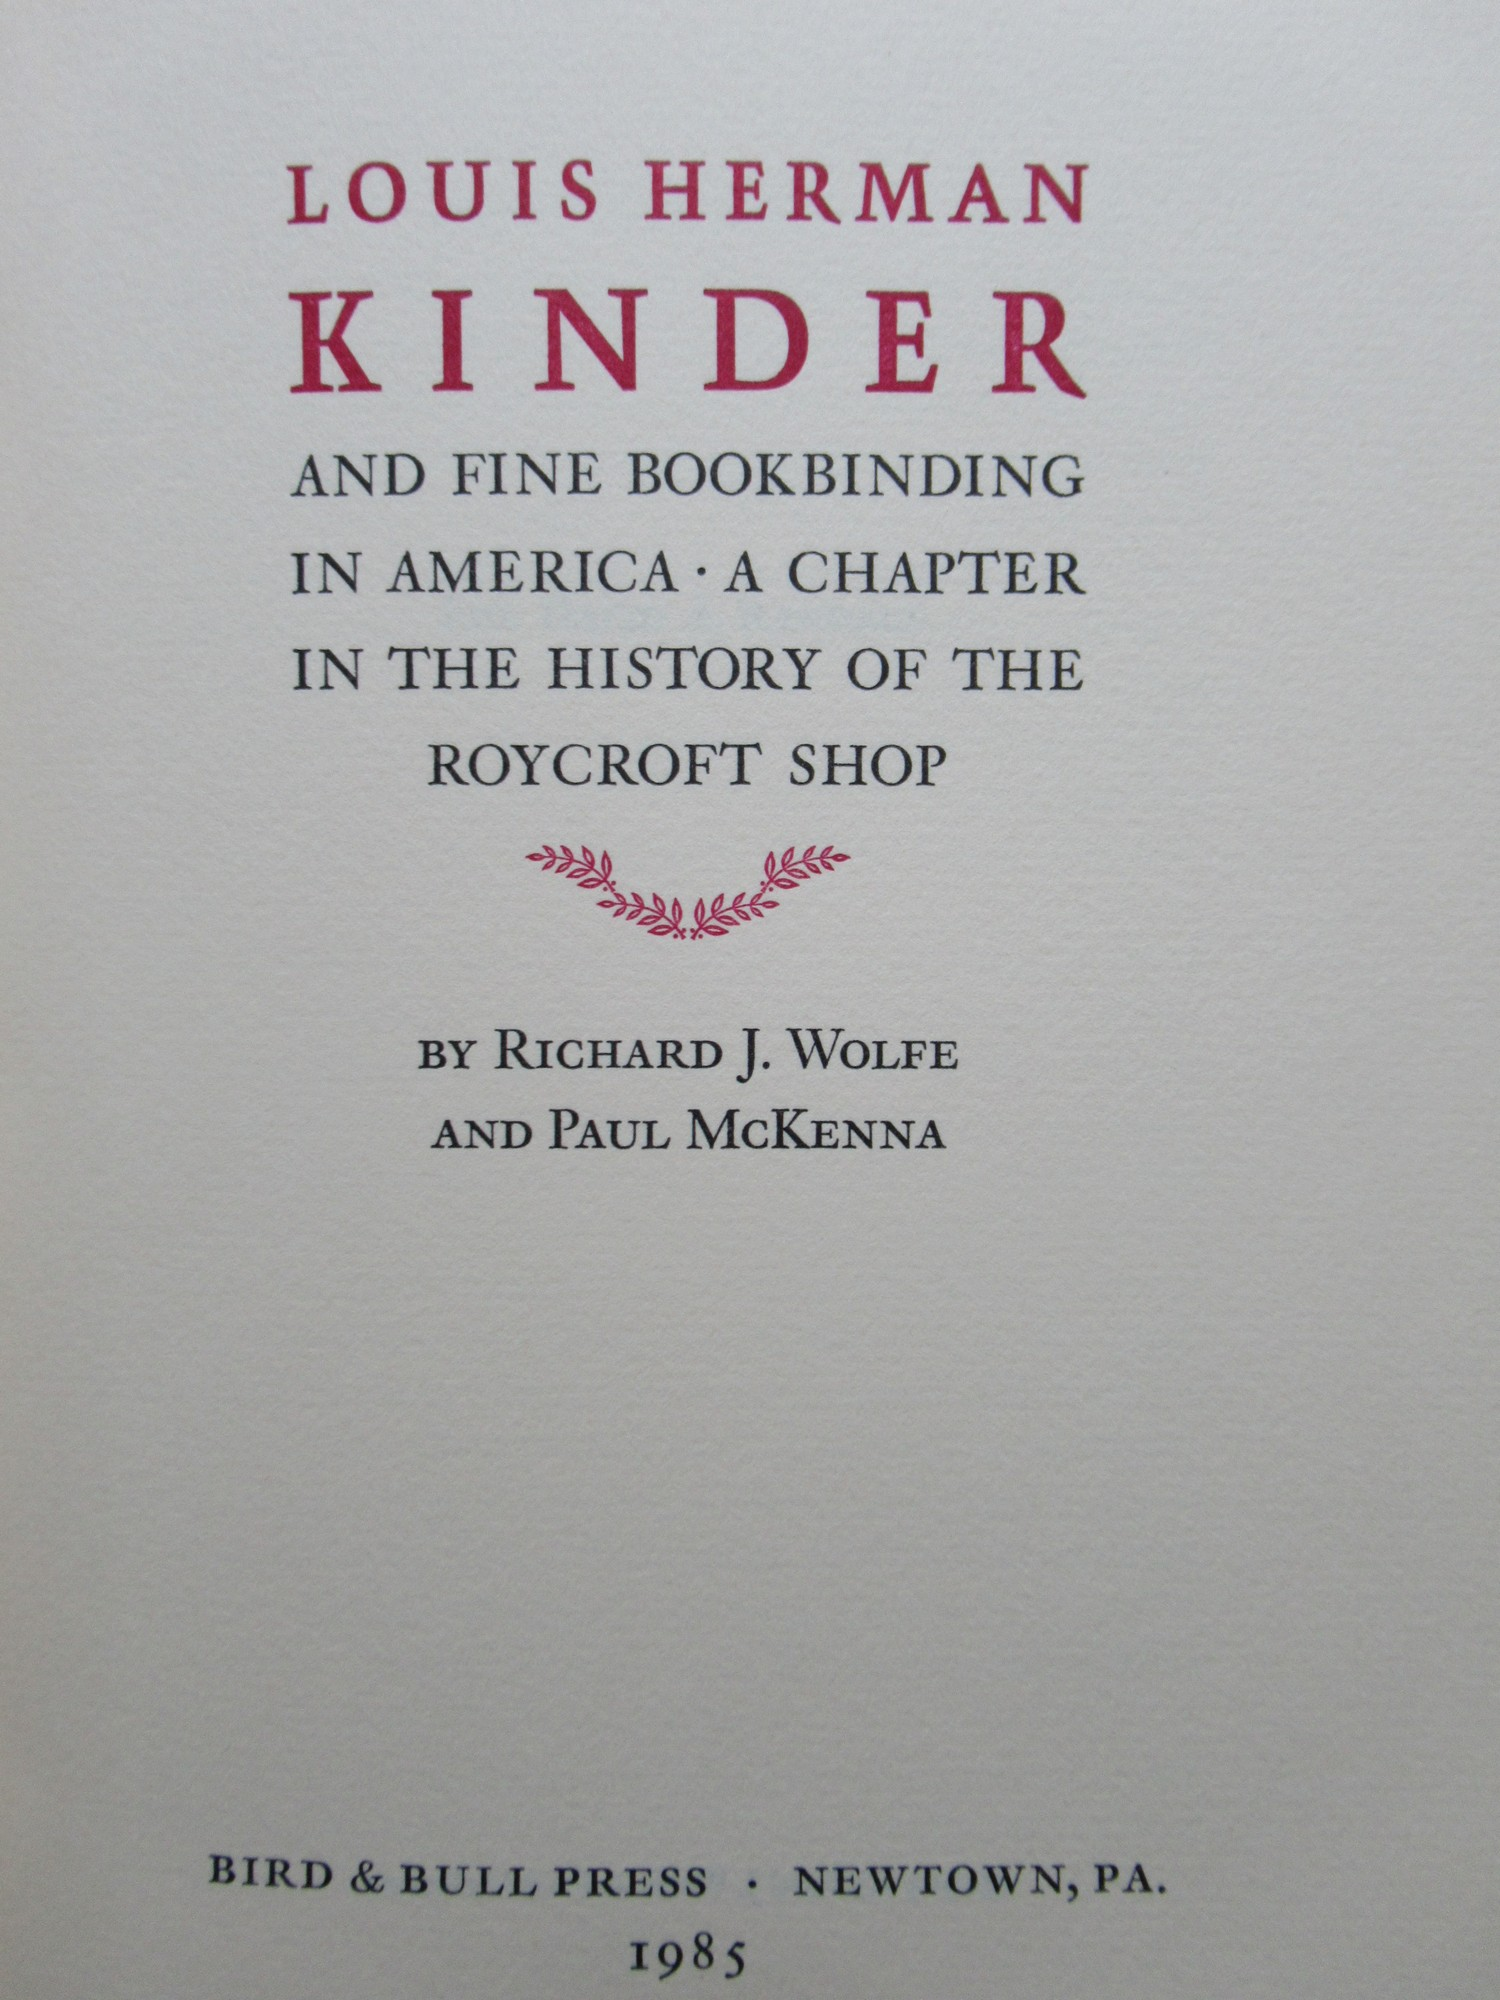 LOUIS HERMAN KINDER AND FINE BOOKBINDING IN AMERICA by